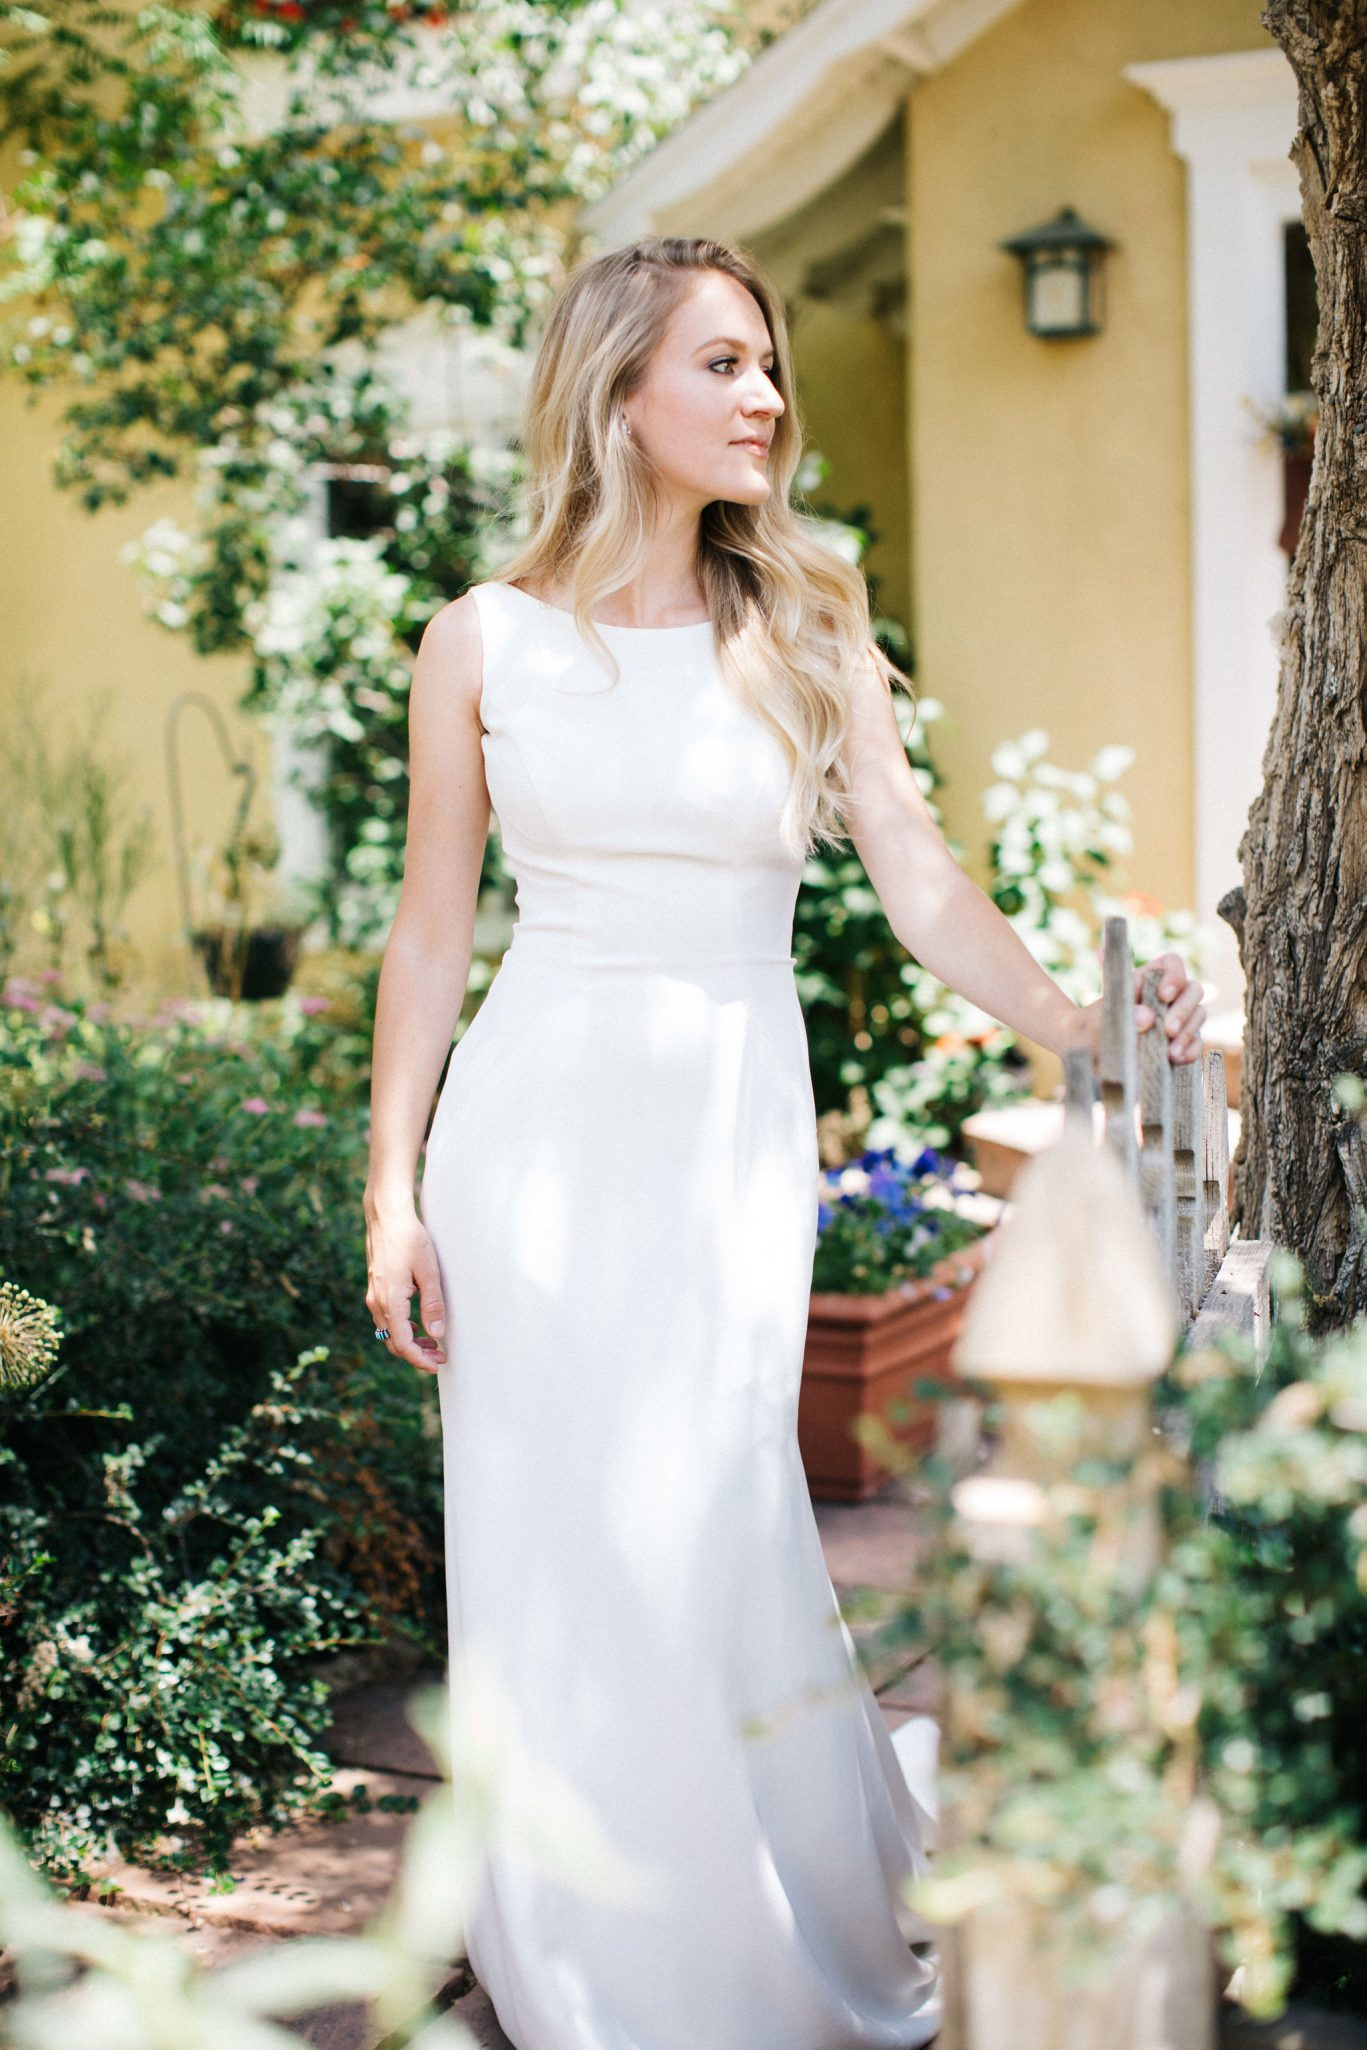 A Romantic Garden Wedding in Durango, Colorado